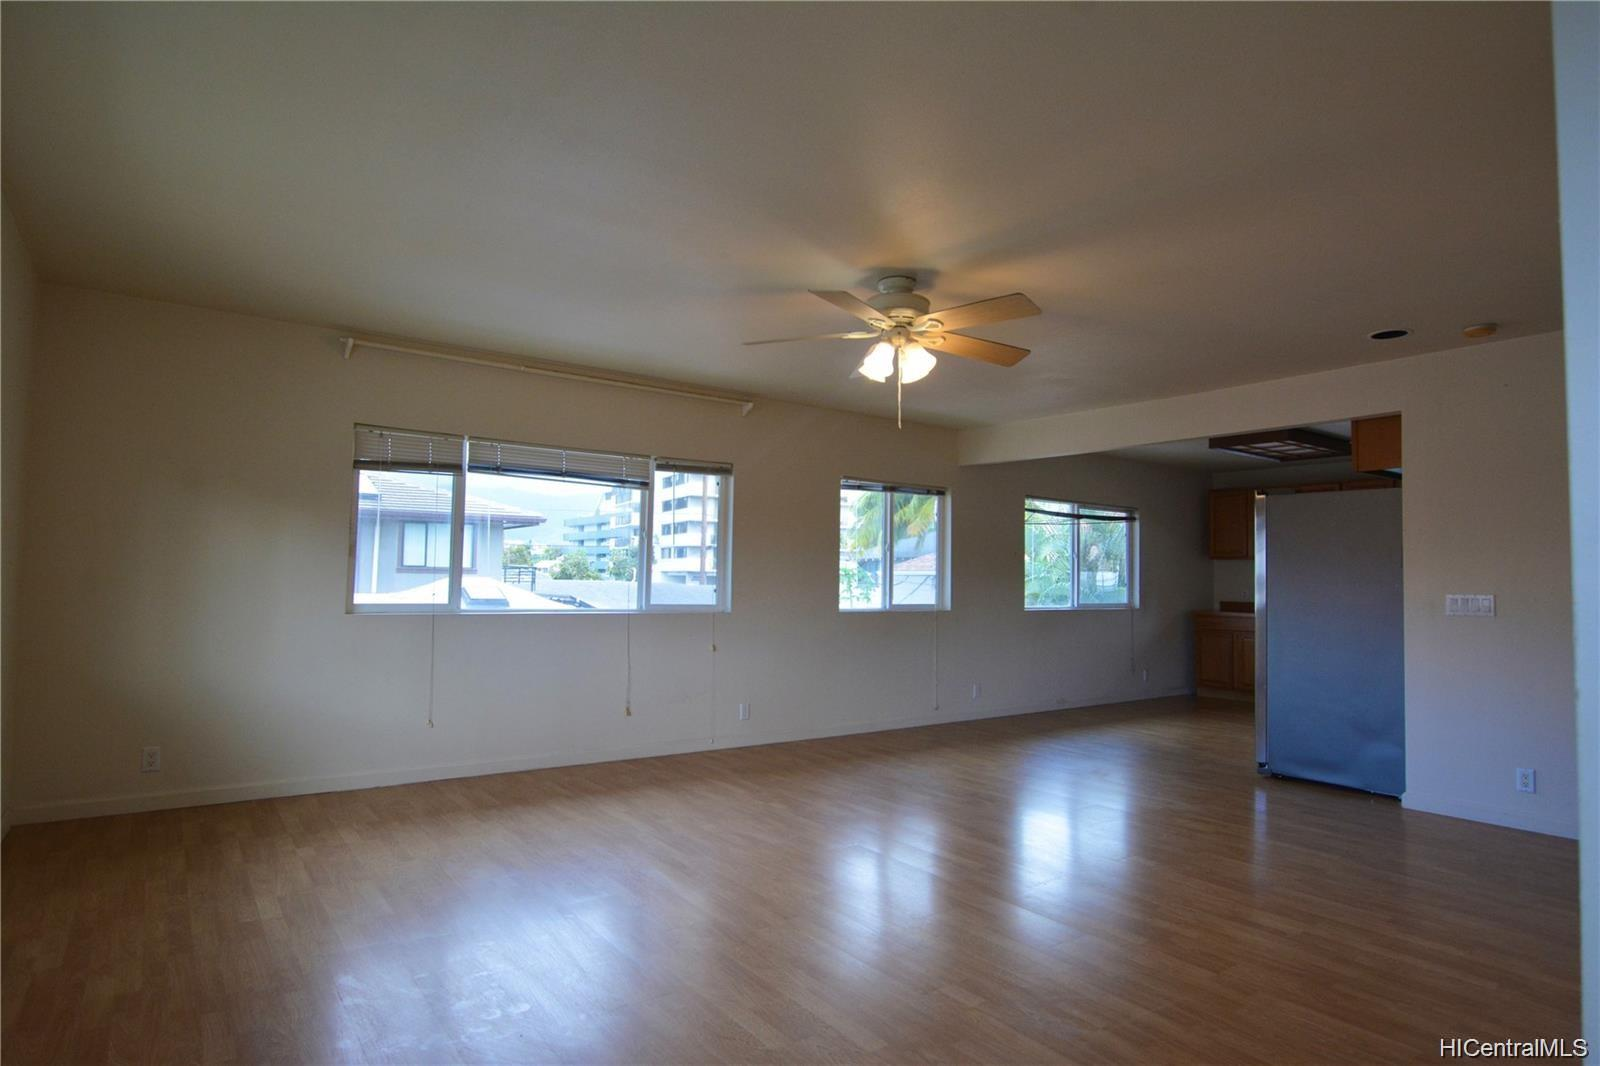 2204 Date Street Honolulu - Multi-family - photo 8 of 19